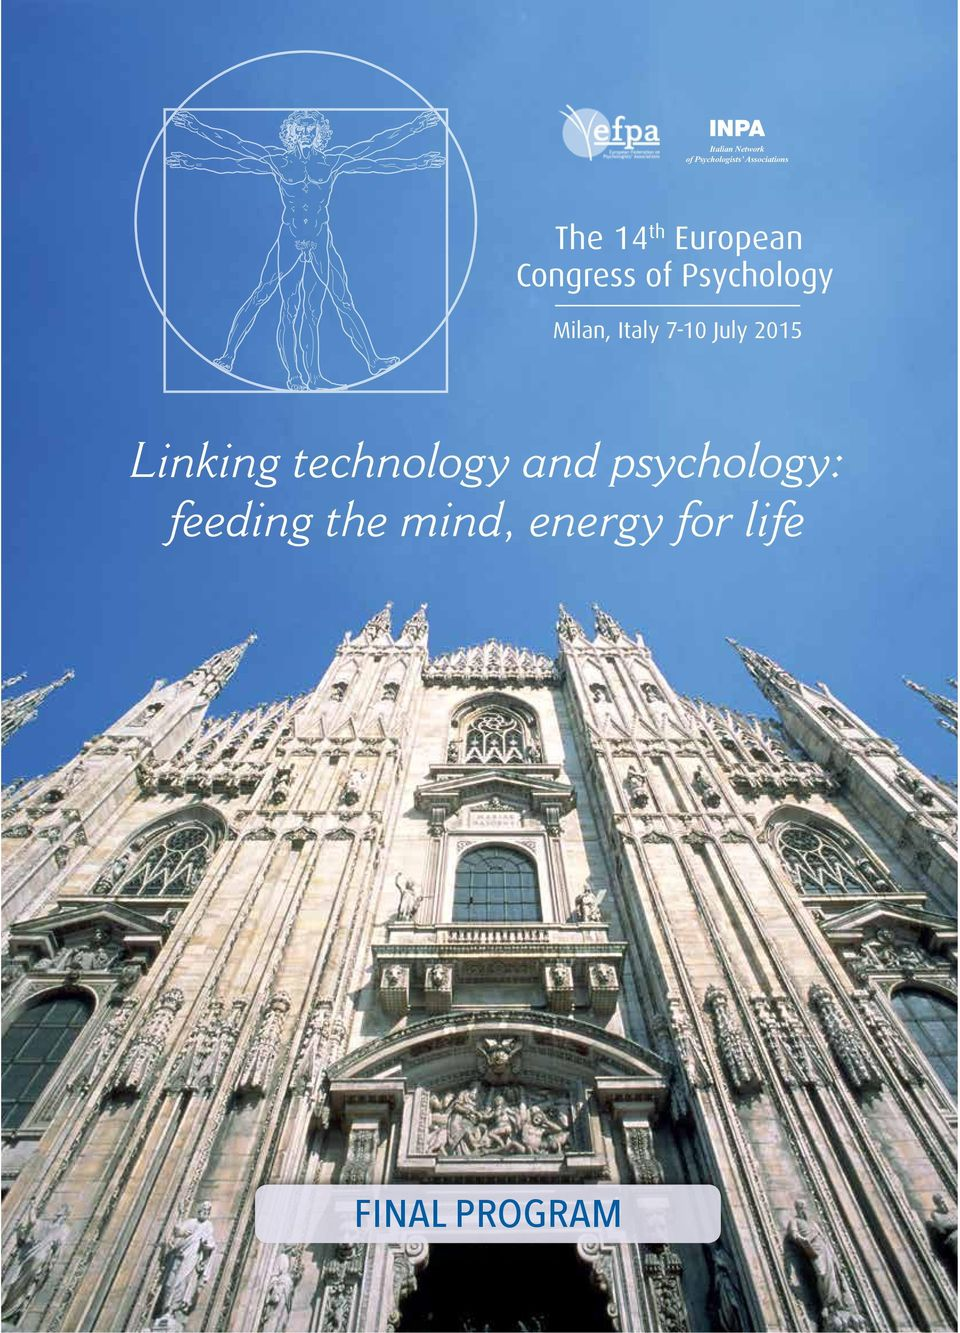 European Congress of Psychology Milan, 7-10 July 2015 The 14 th European Congress of Psychology Milan, 7-10 July 2015 The 14